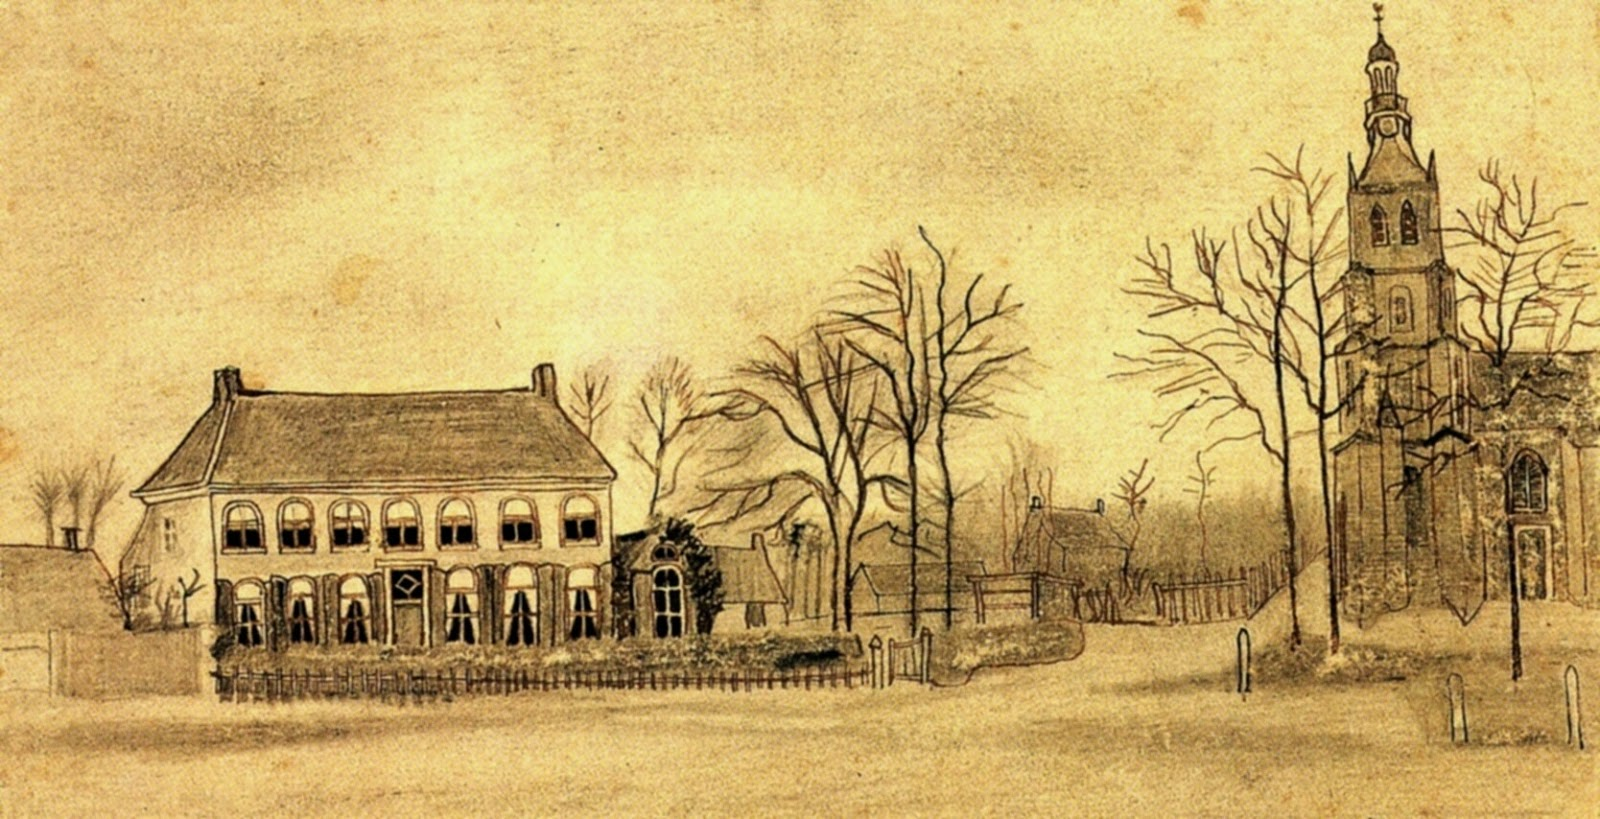 art artists vincent van gogh drawings part 1 1876 vicarage and church at etten pencil on paper